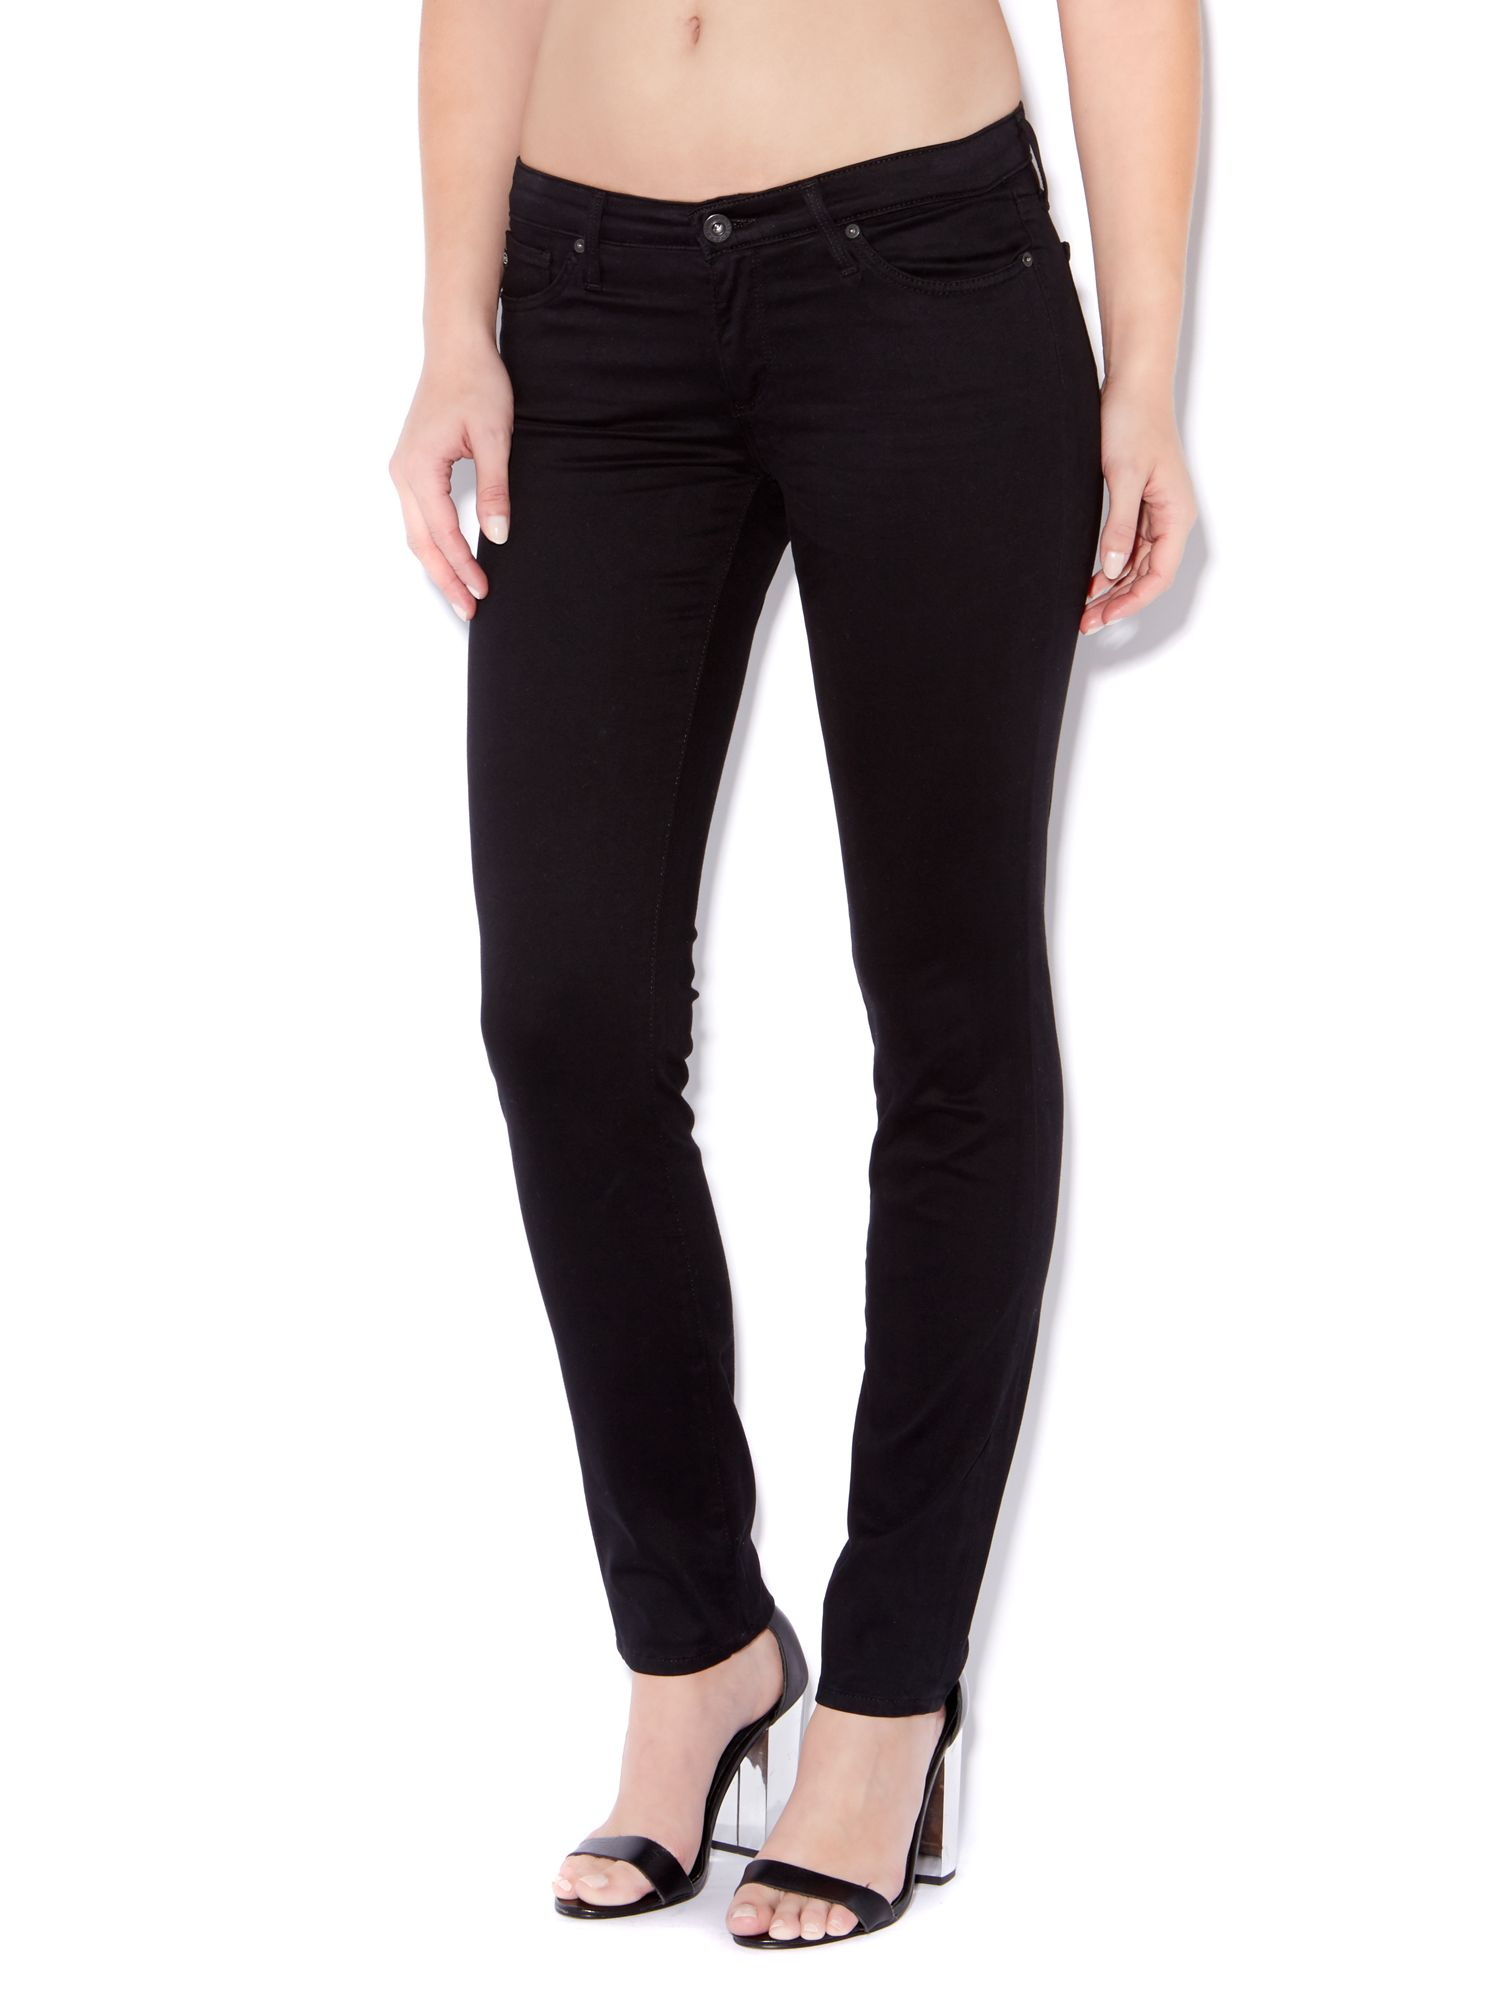 The Stilt cigarette leg jeans in Super Black